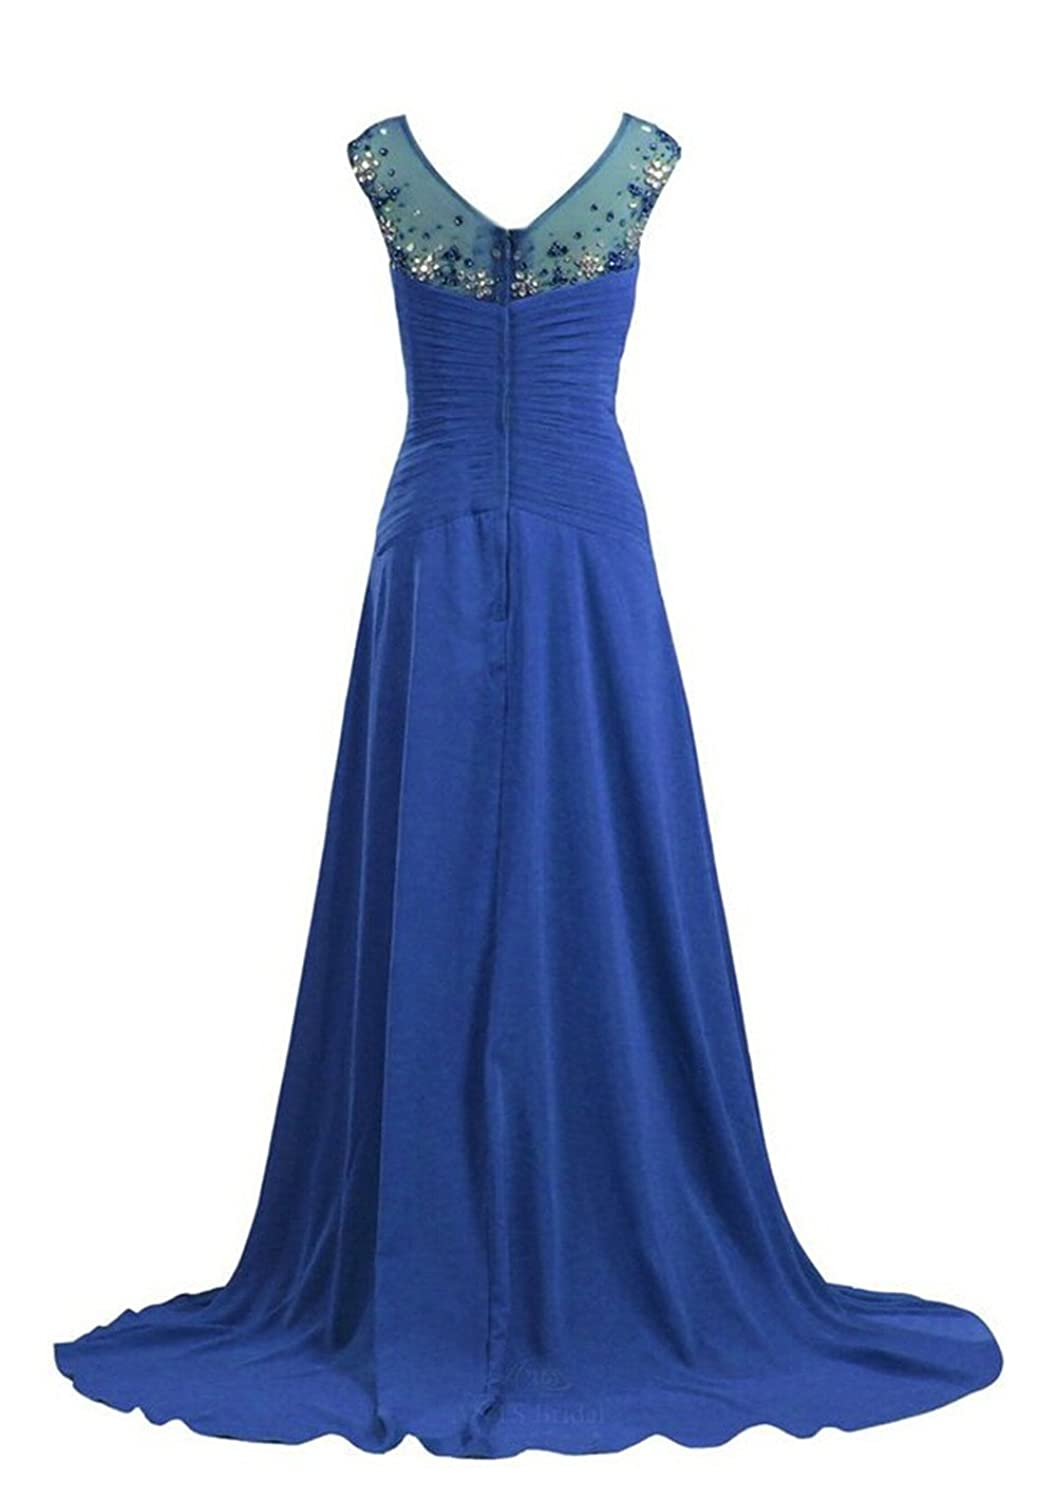 AngelDragon O-Neck Crystal Beaded Party Prom Dress Chiffon Long Evening Gown